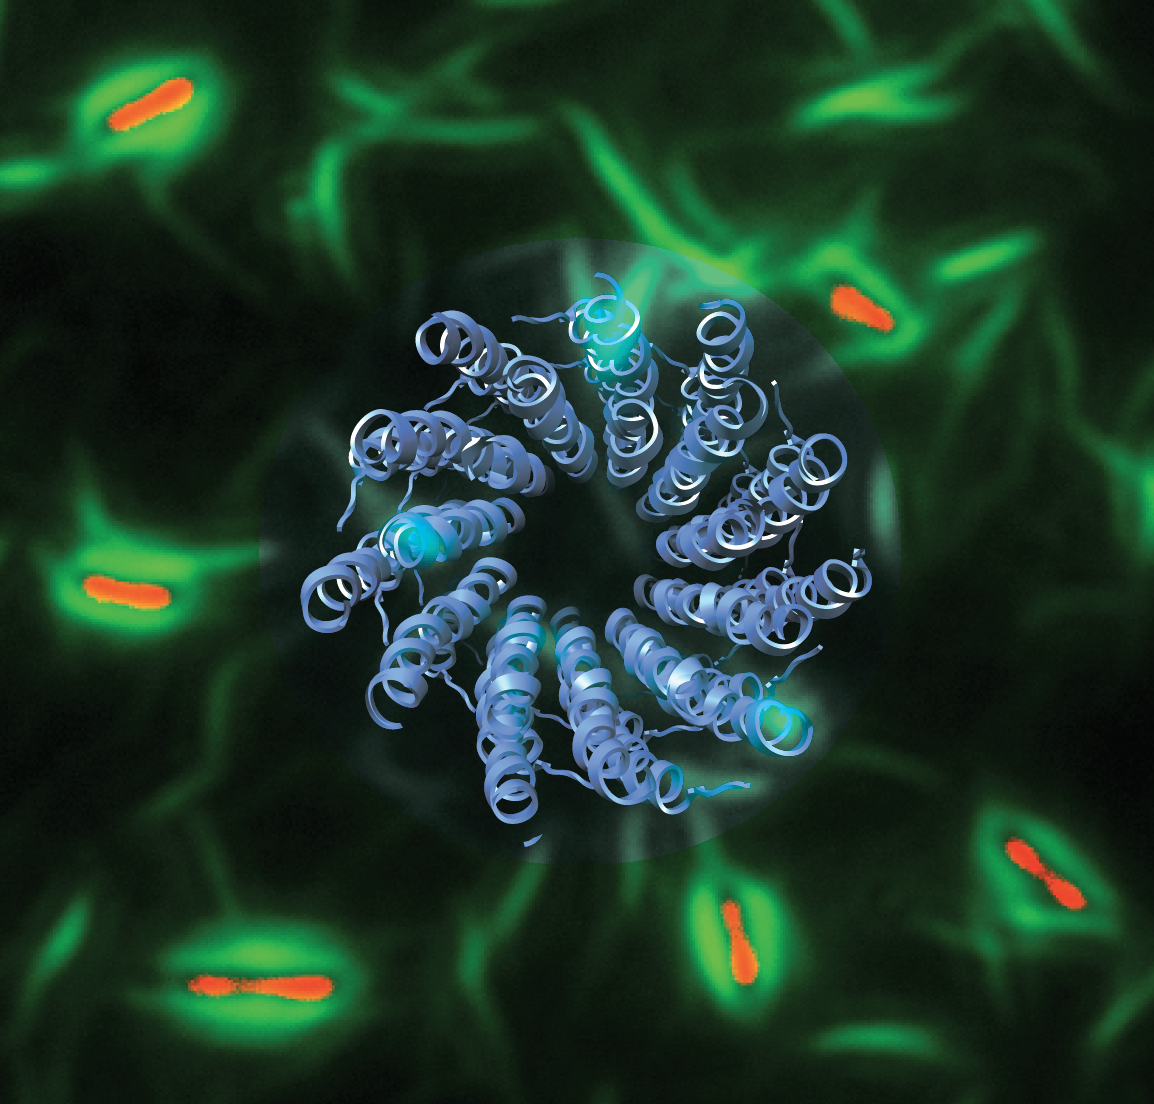 The atomic structure of a symbiotic bacteriophage (blue ribbon) was linked to a mechanism of antibiotic tolerance in Pseudomonas aeruginosa bacterial biofilms. Phage liquid crystalline droplets (green) form protective sheaths around bacterial cells (red),